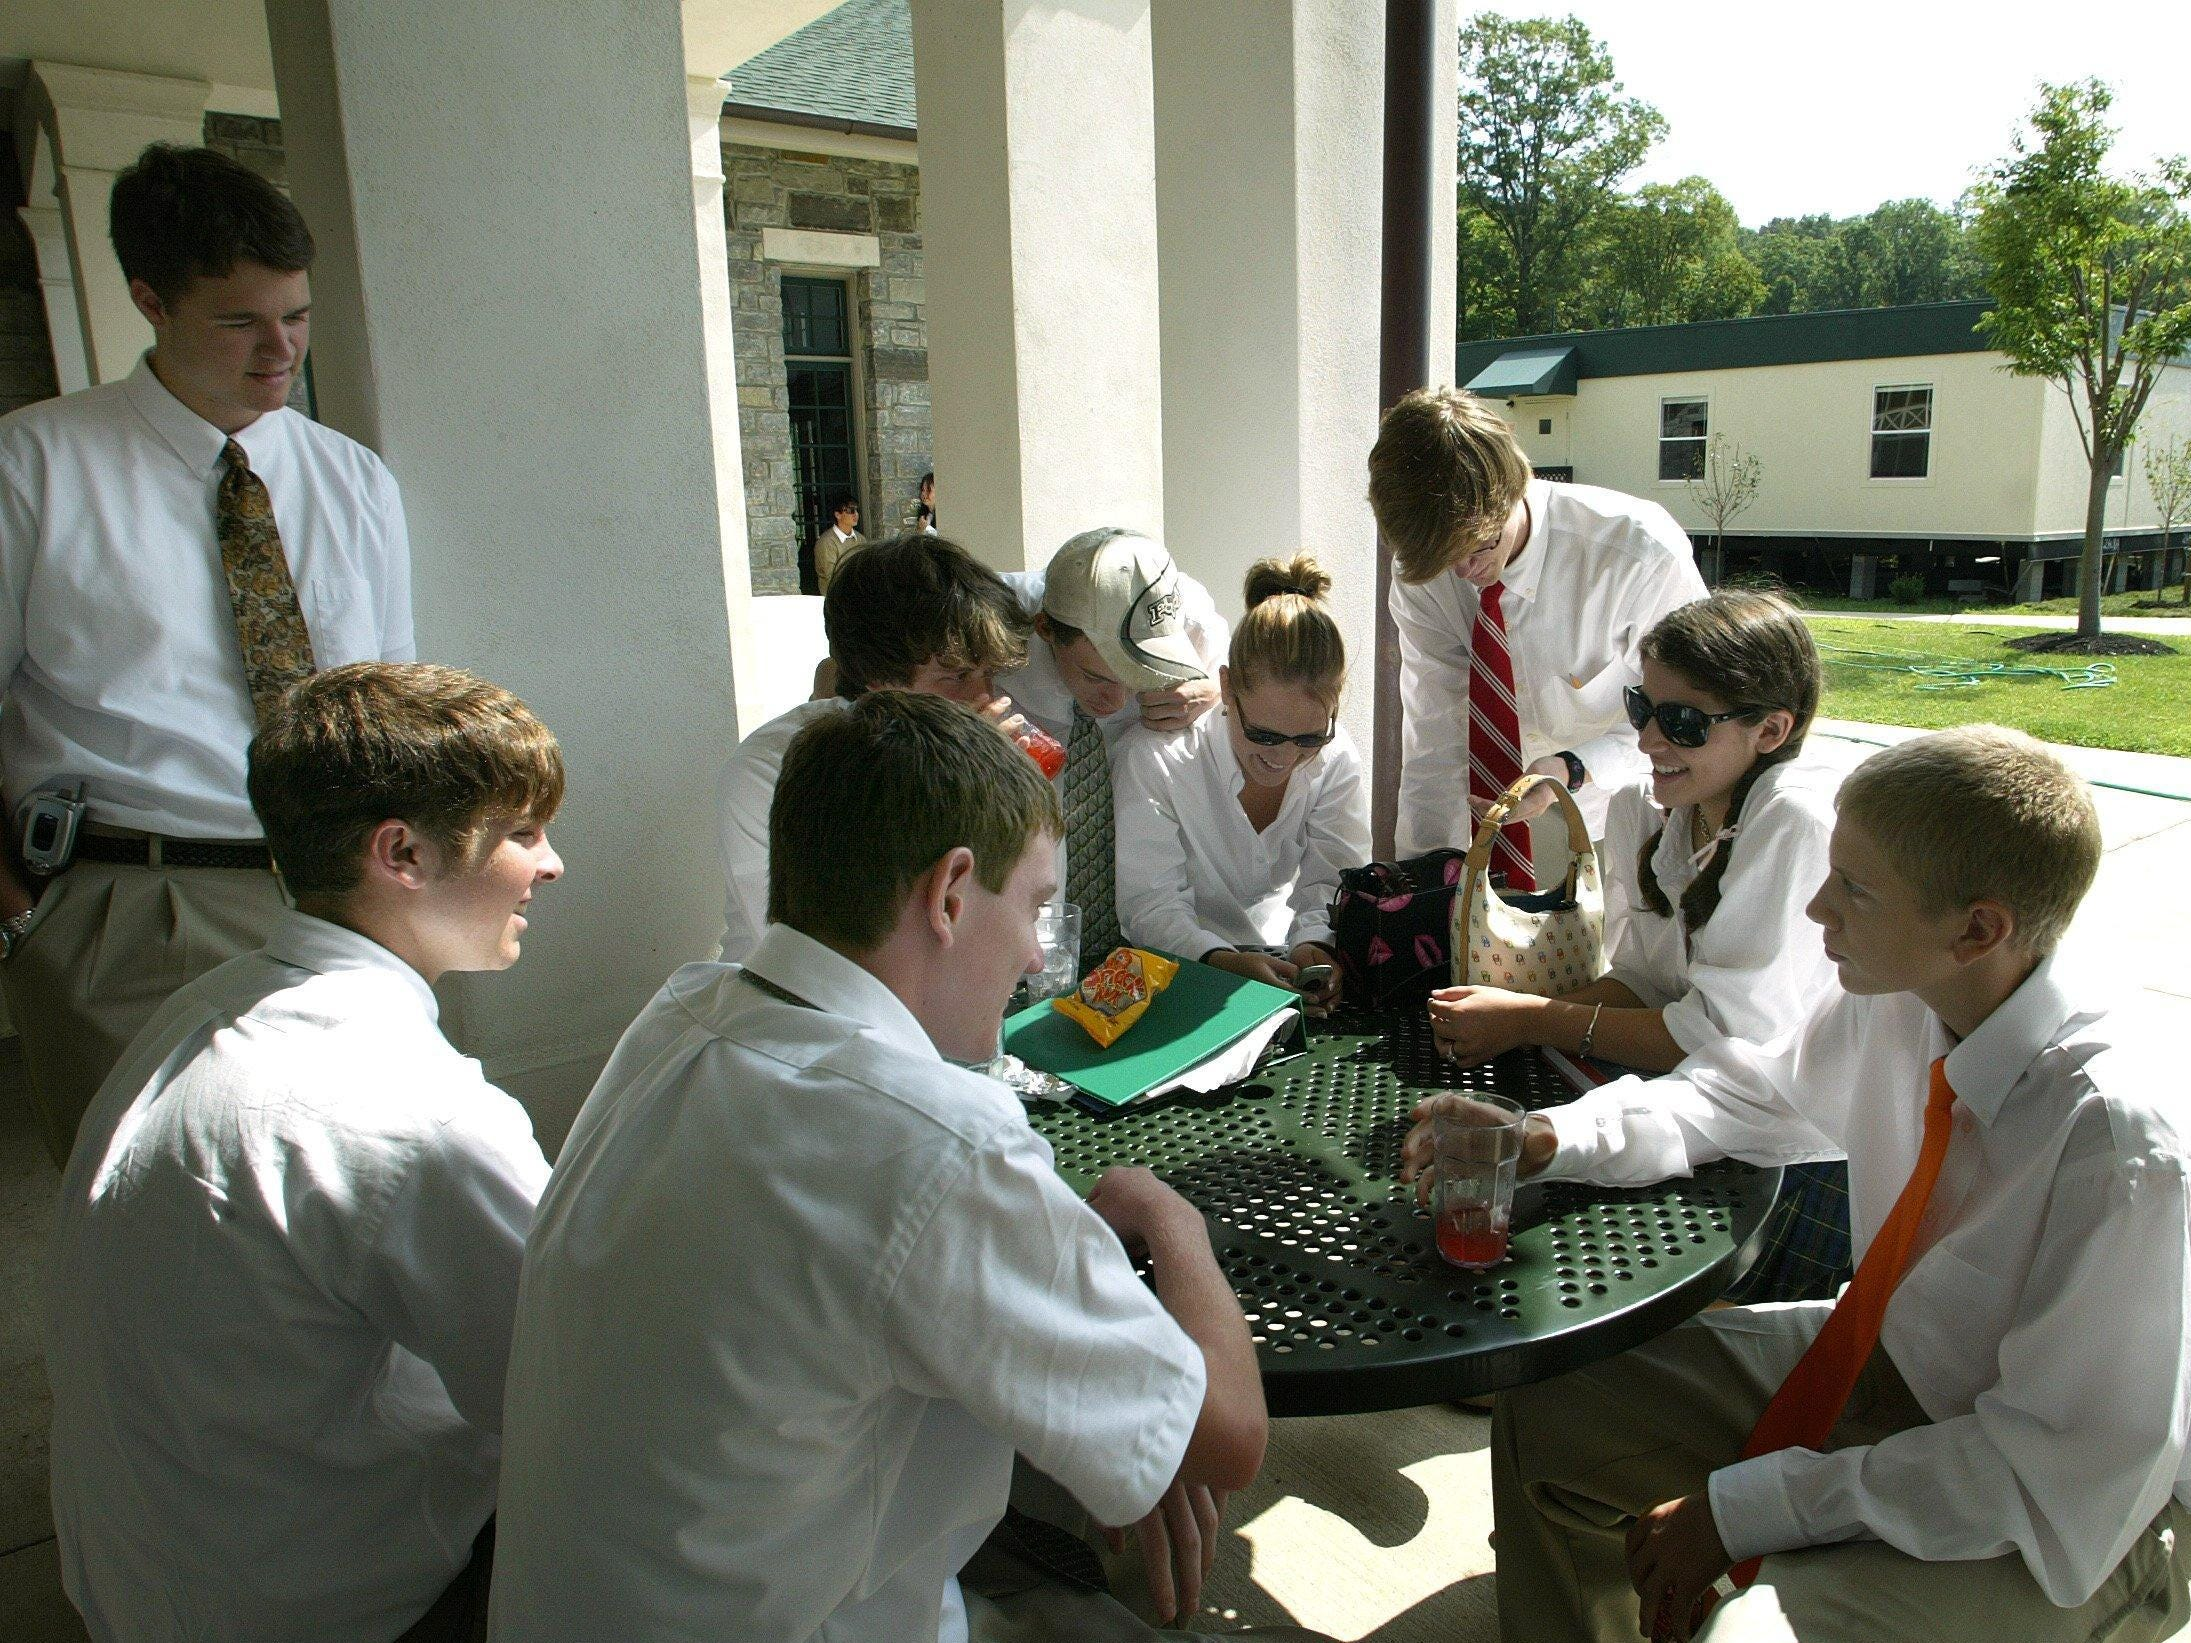 Students at Currey Ingram Academy chat on the patio in between classes in 2004. Behind them are the new temporary classrooms they call the cottages.